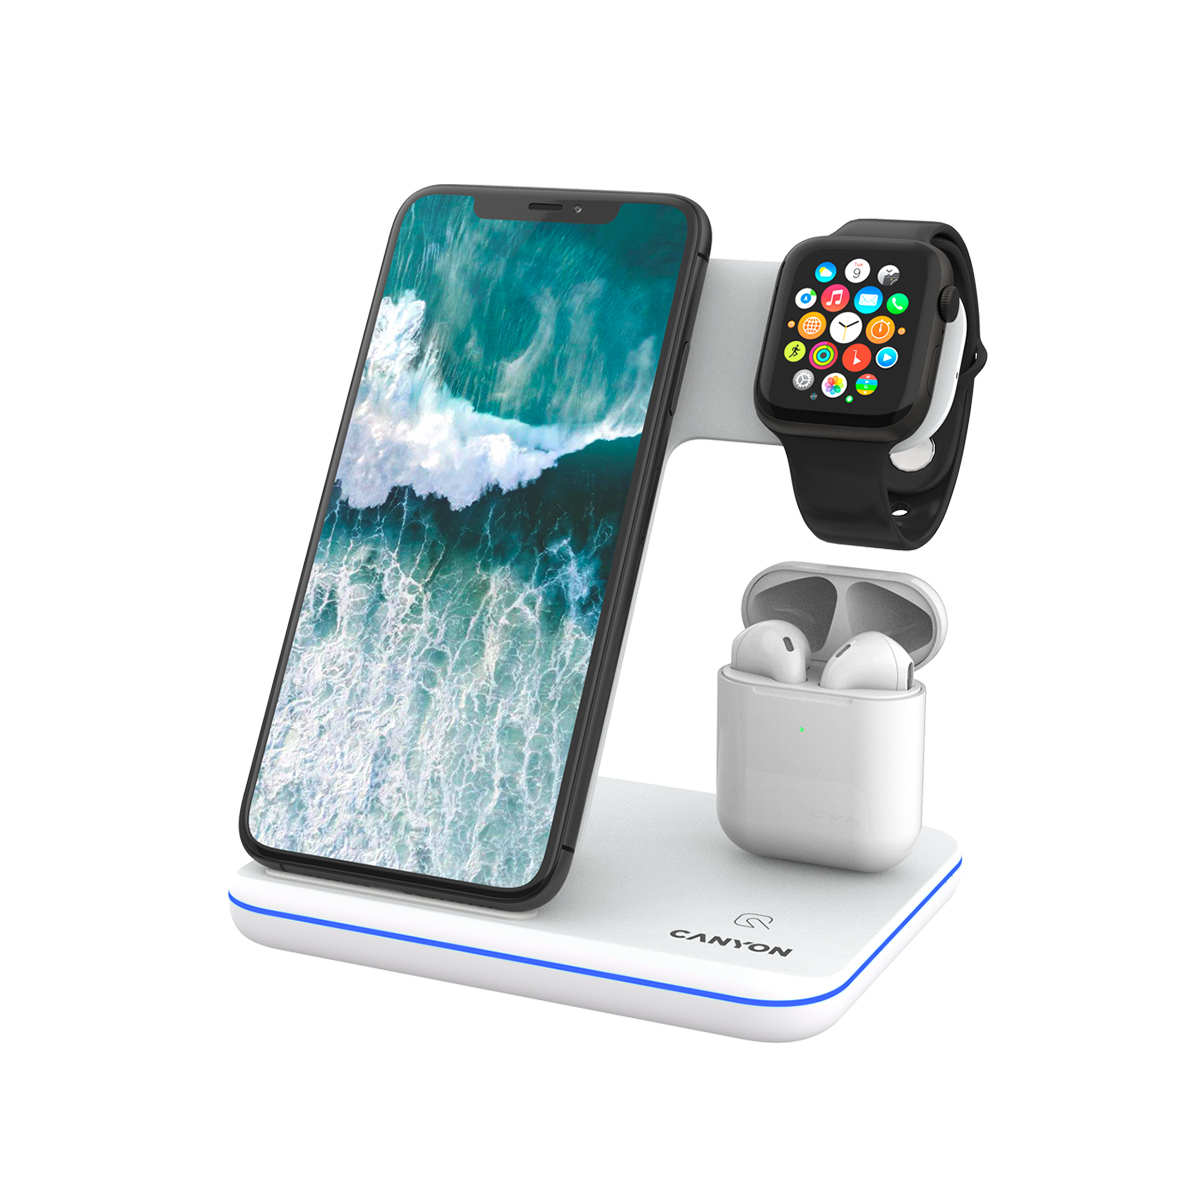 Canyon 3-in-1 Wireless charging station for gadgets QI White - CNS-WCS302W